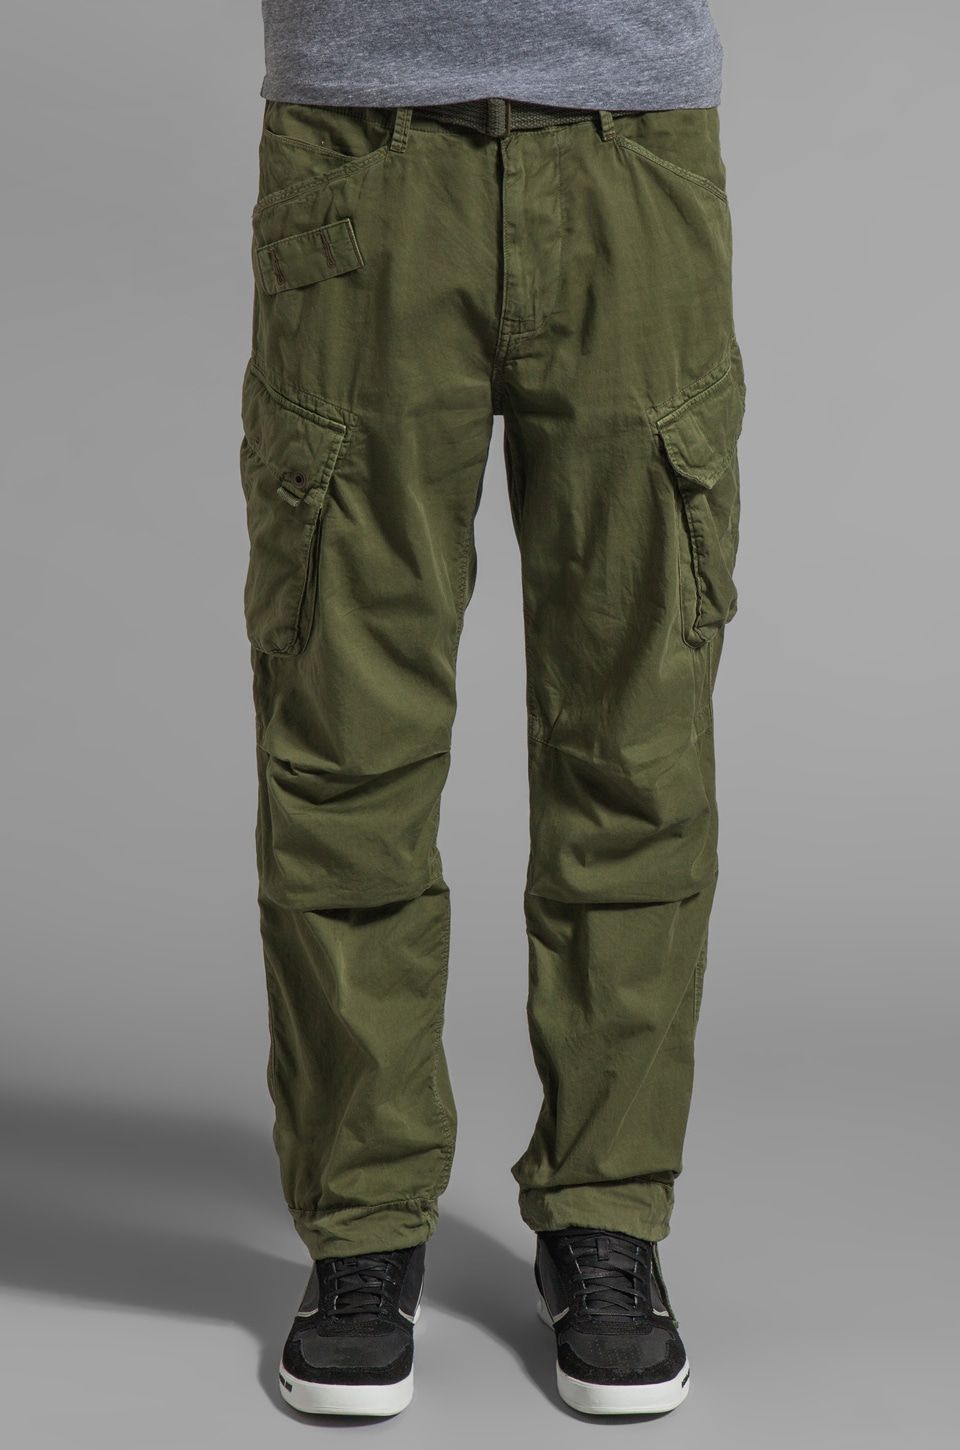 G-Star Rovic Loose Pant in Sage